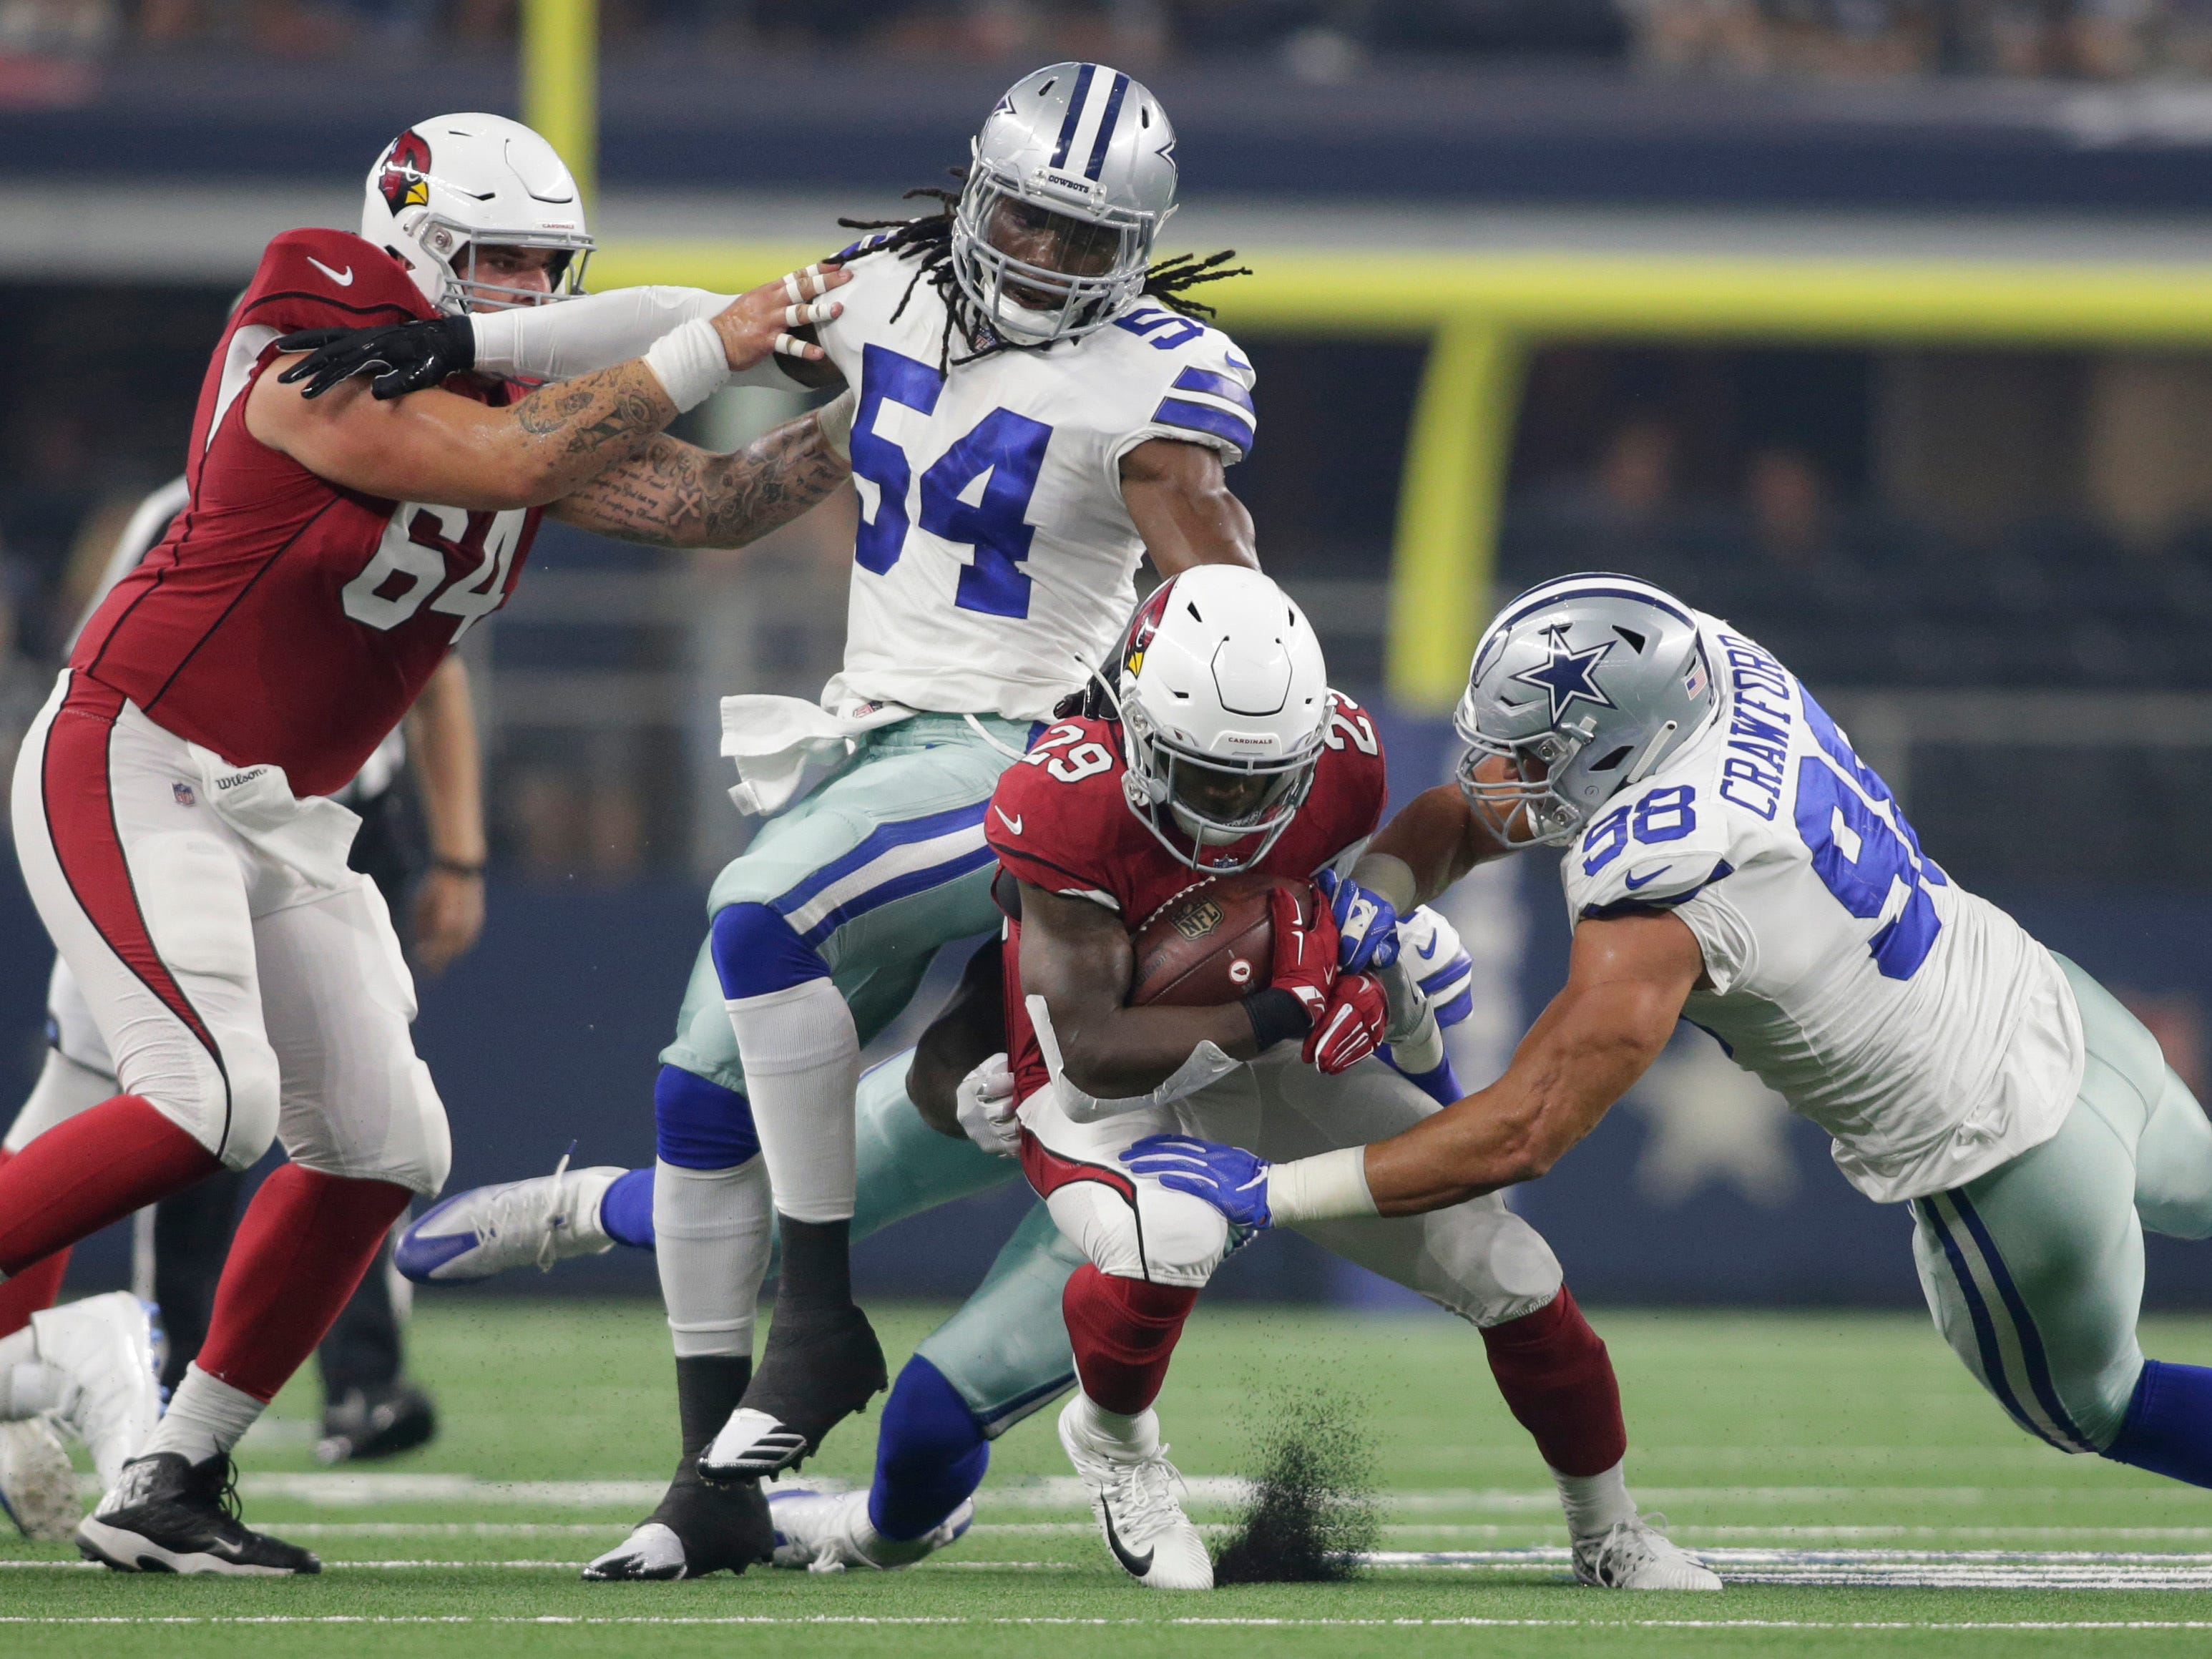 Aug 26, 2018; Arlington, TX, USA; Arizona Cardinals running back Chase Edmonds (29) is tackled by Dallas Cowboys defensive end Tyrone Crawford (98) and linebacker Jaylon Smith (54) in the first quarter at AT&T Stadium.